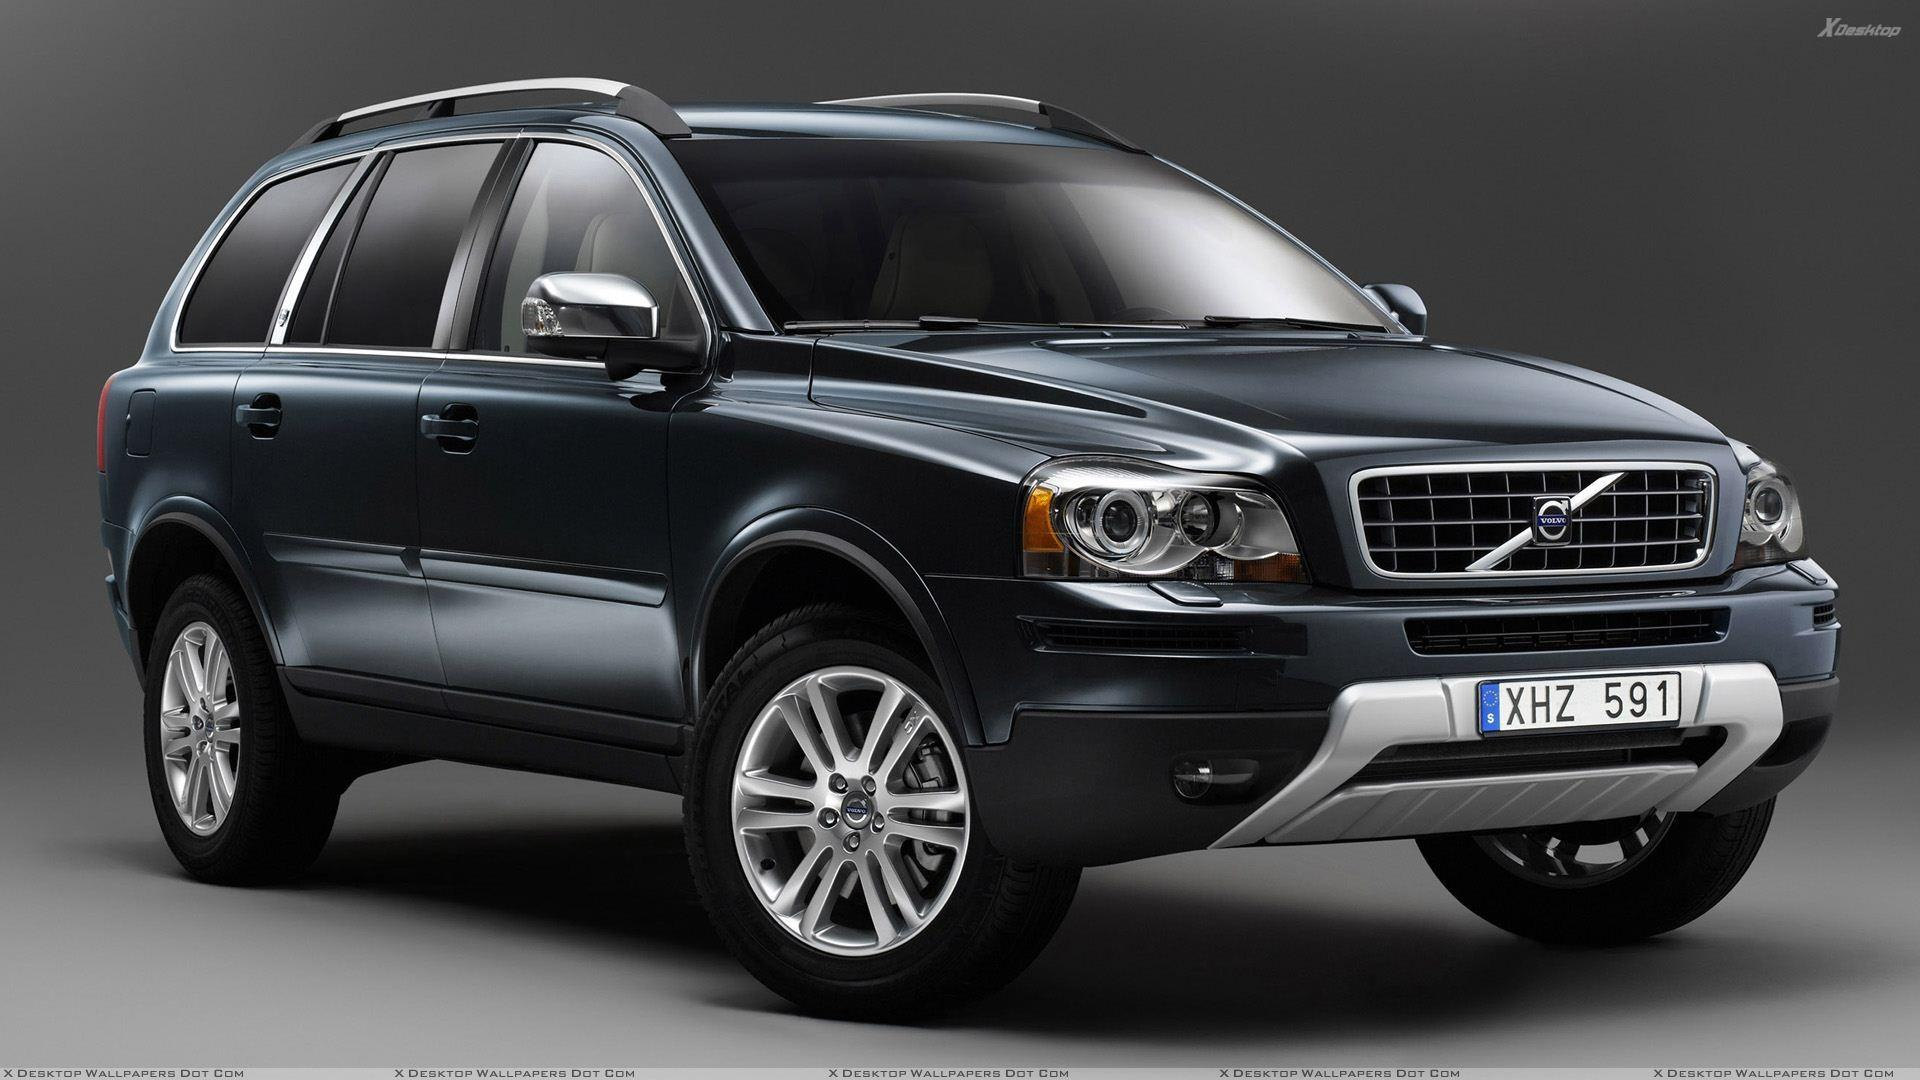 Volvo XC90 Wallpapers, Photos & Images in HD